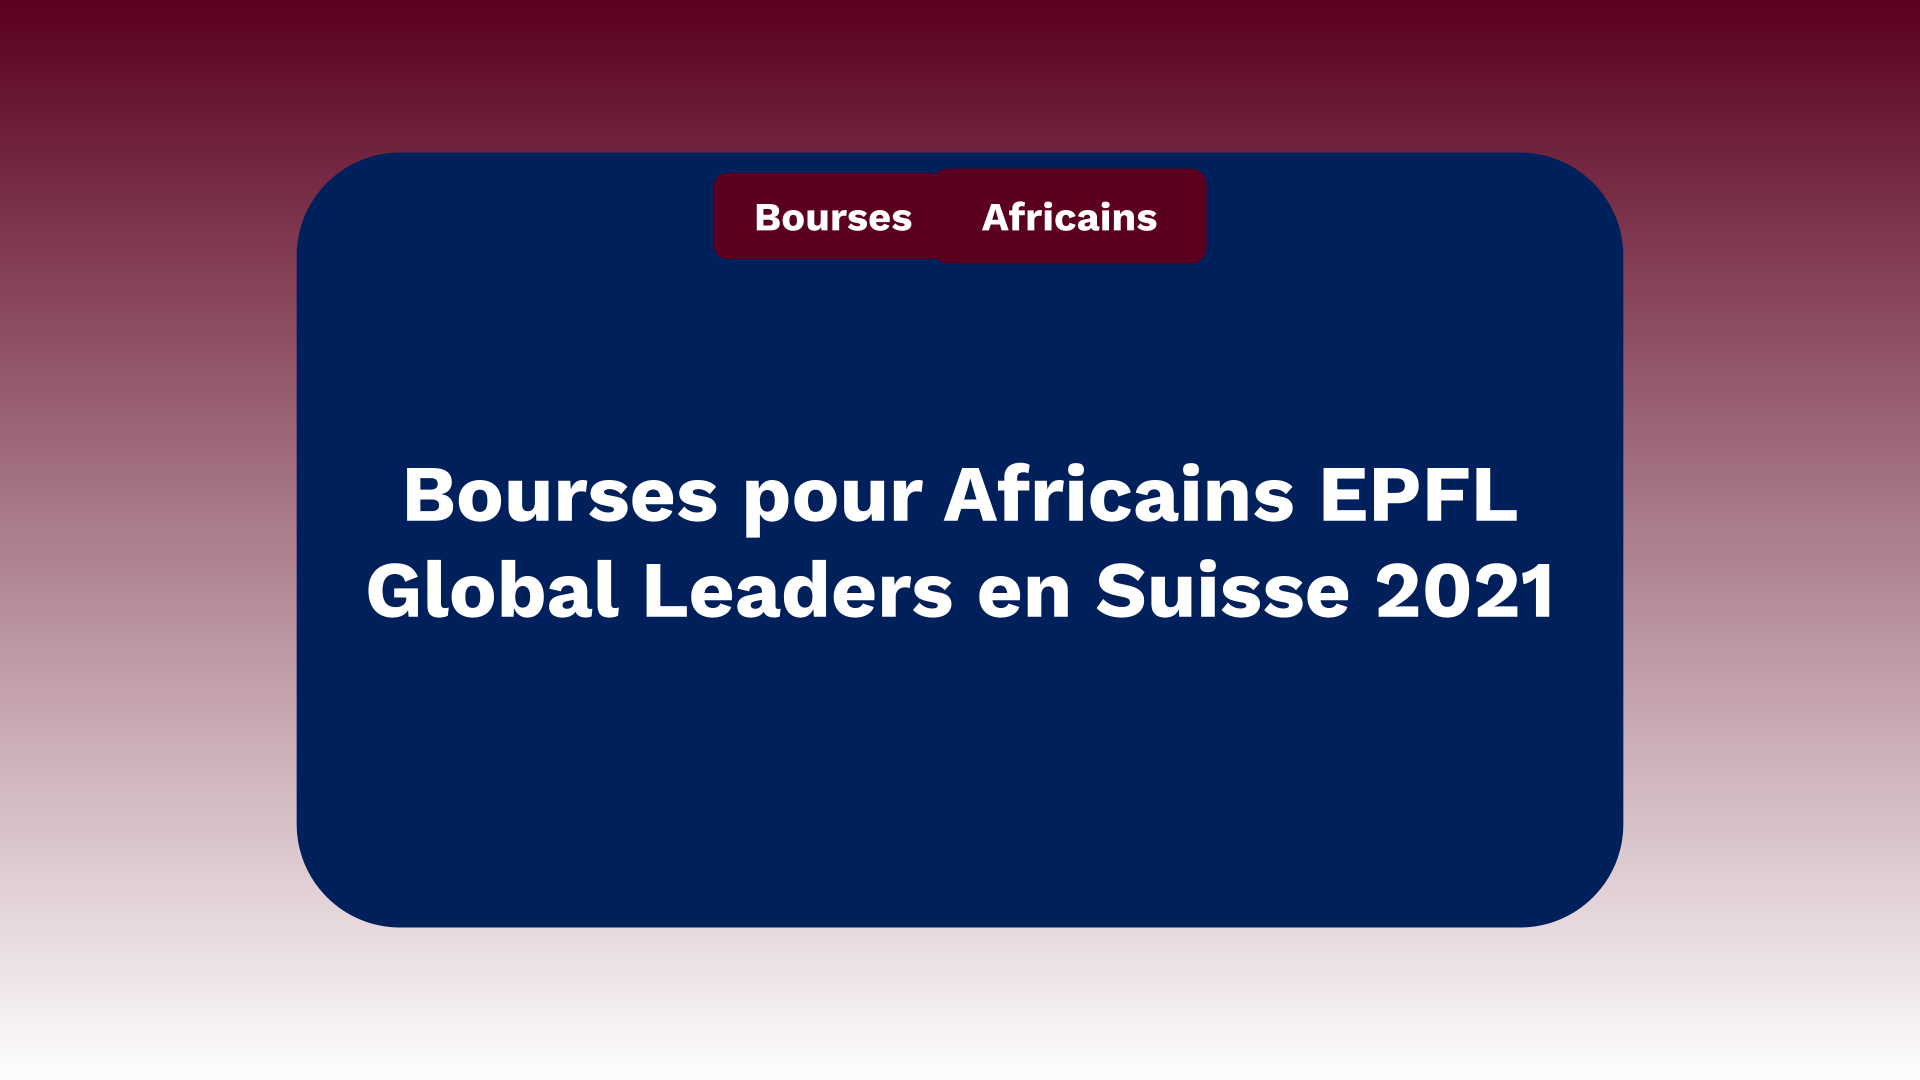 Bourses pour Africains EPFL Global Leaders